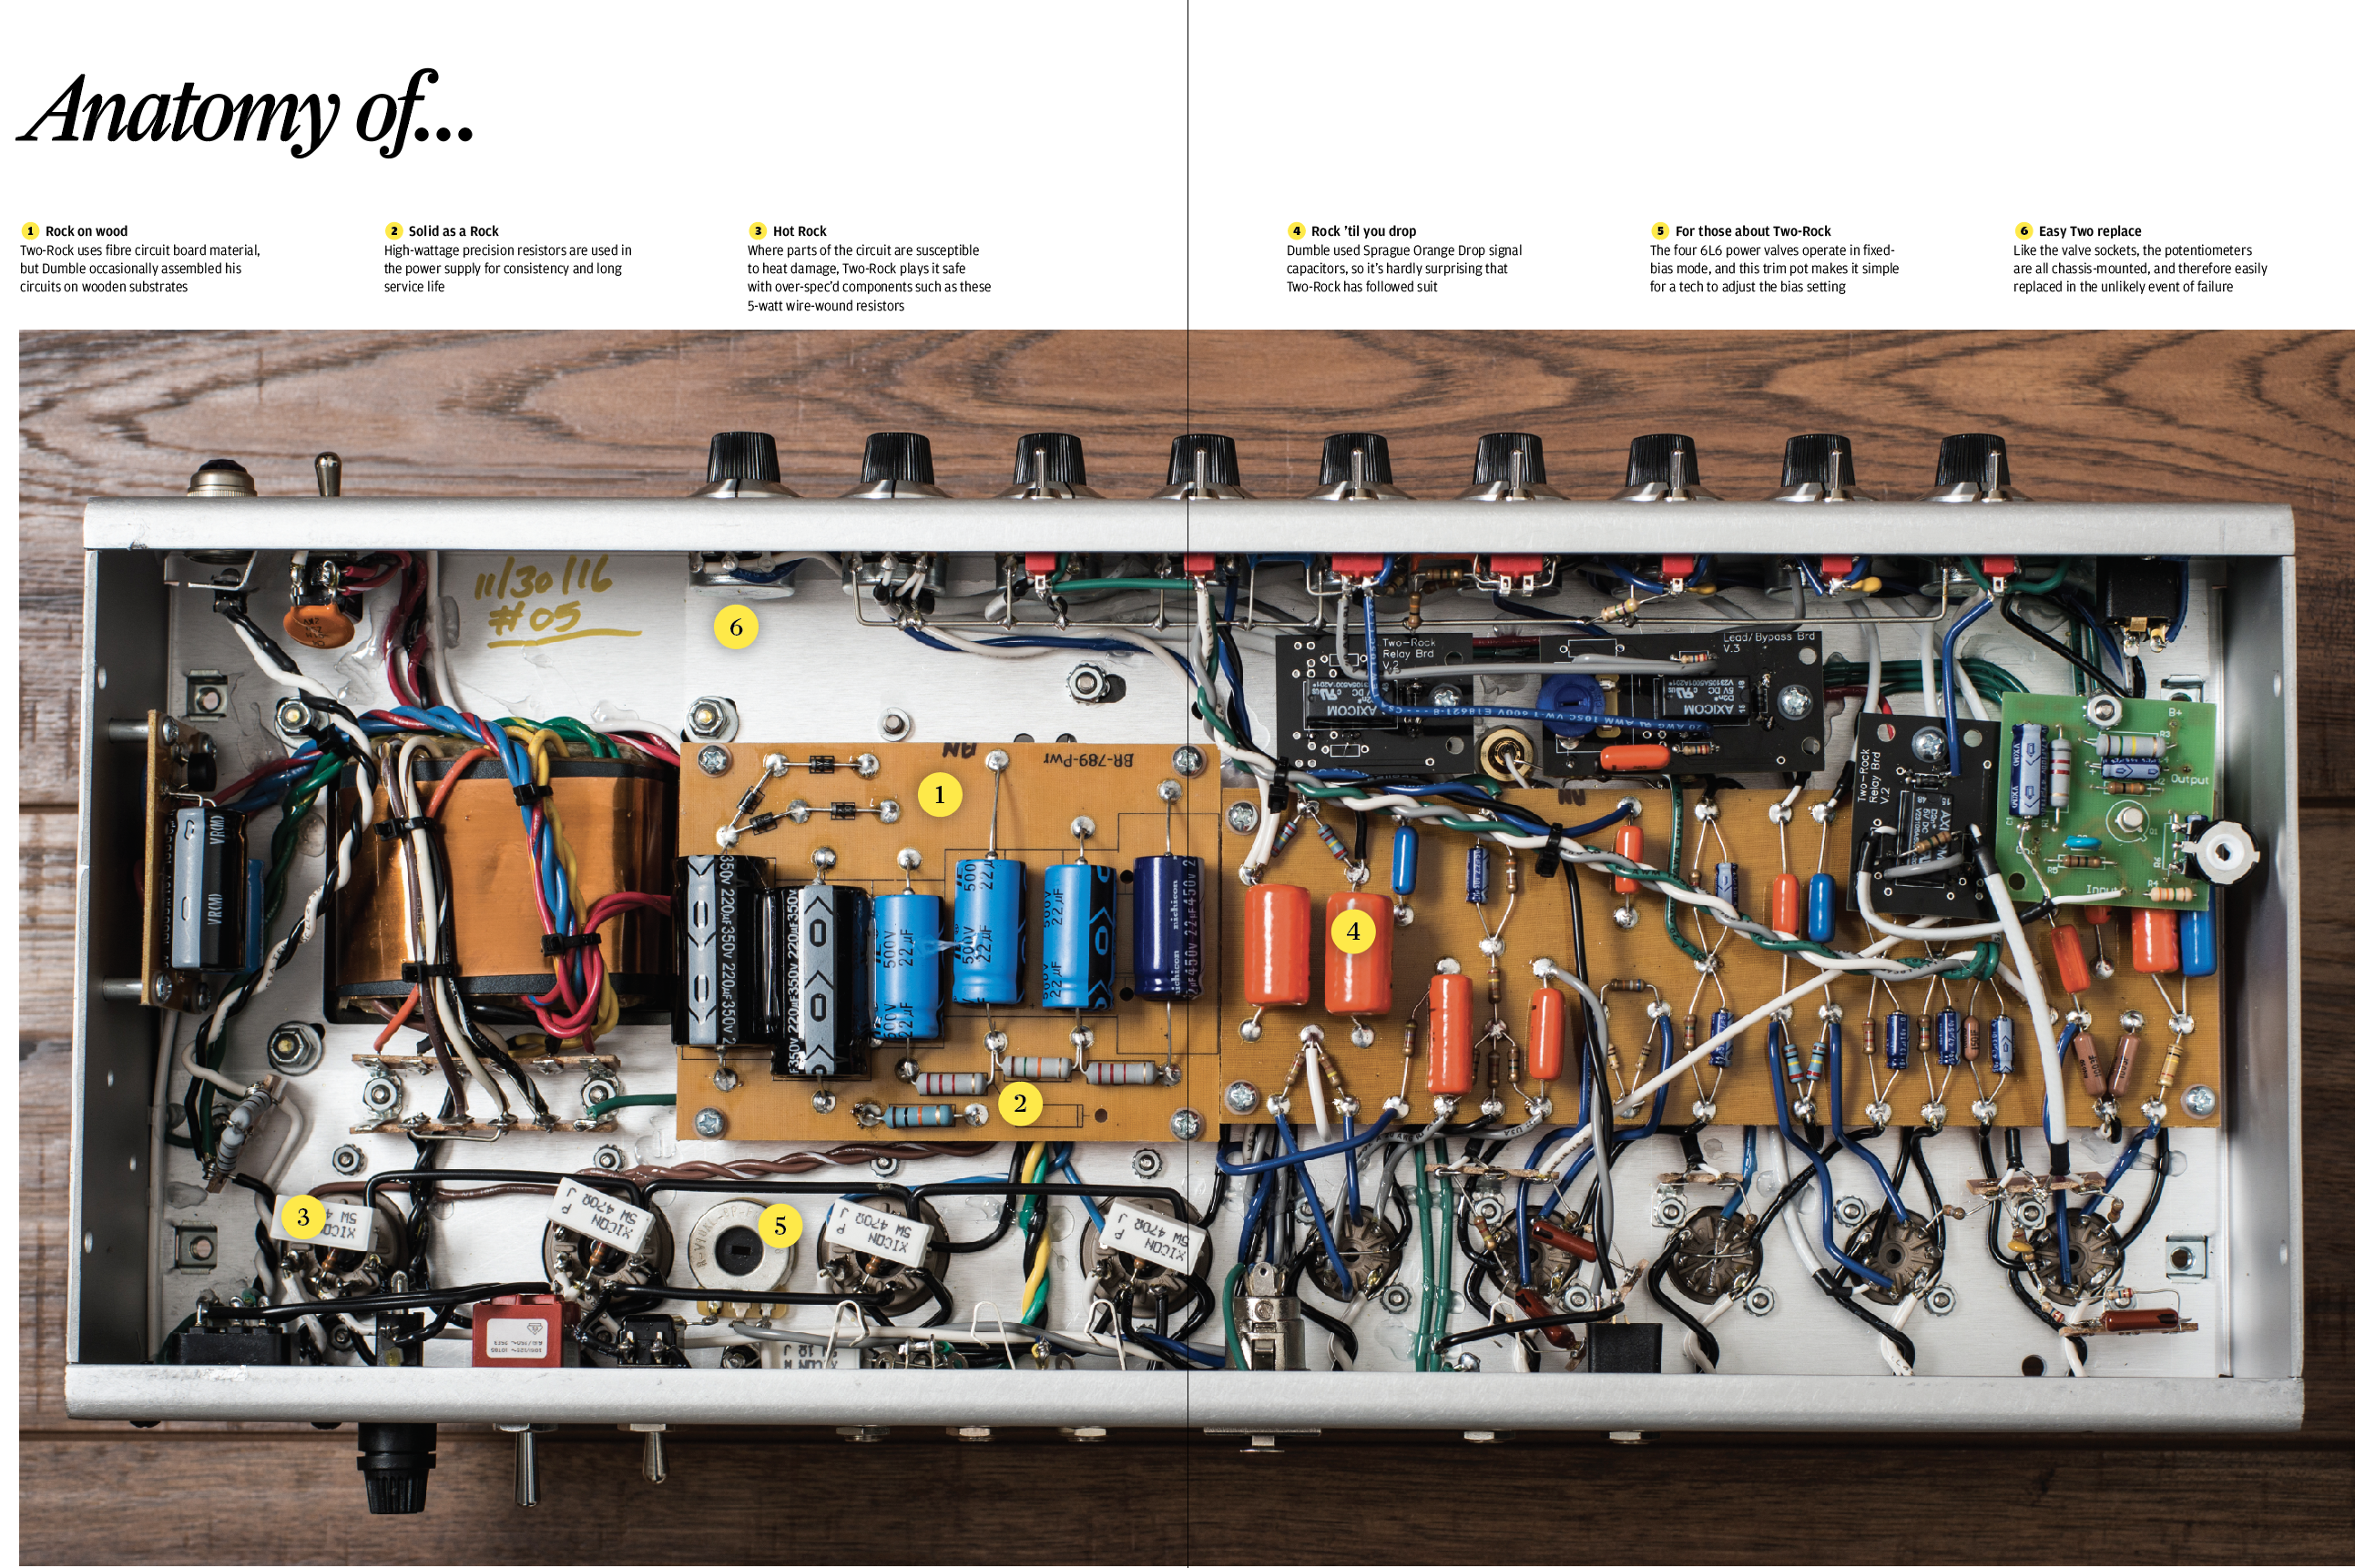 Two Rock Classic Reverb Signature The Guitar Magazine John Mayer Strat Wiring Diagram Oddly Enough Once We Had Settled On A Setting That Suited Us Found Were Able To Swap From Without Needing Adjust Amp